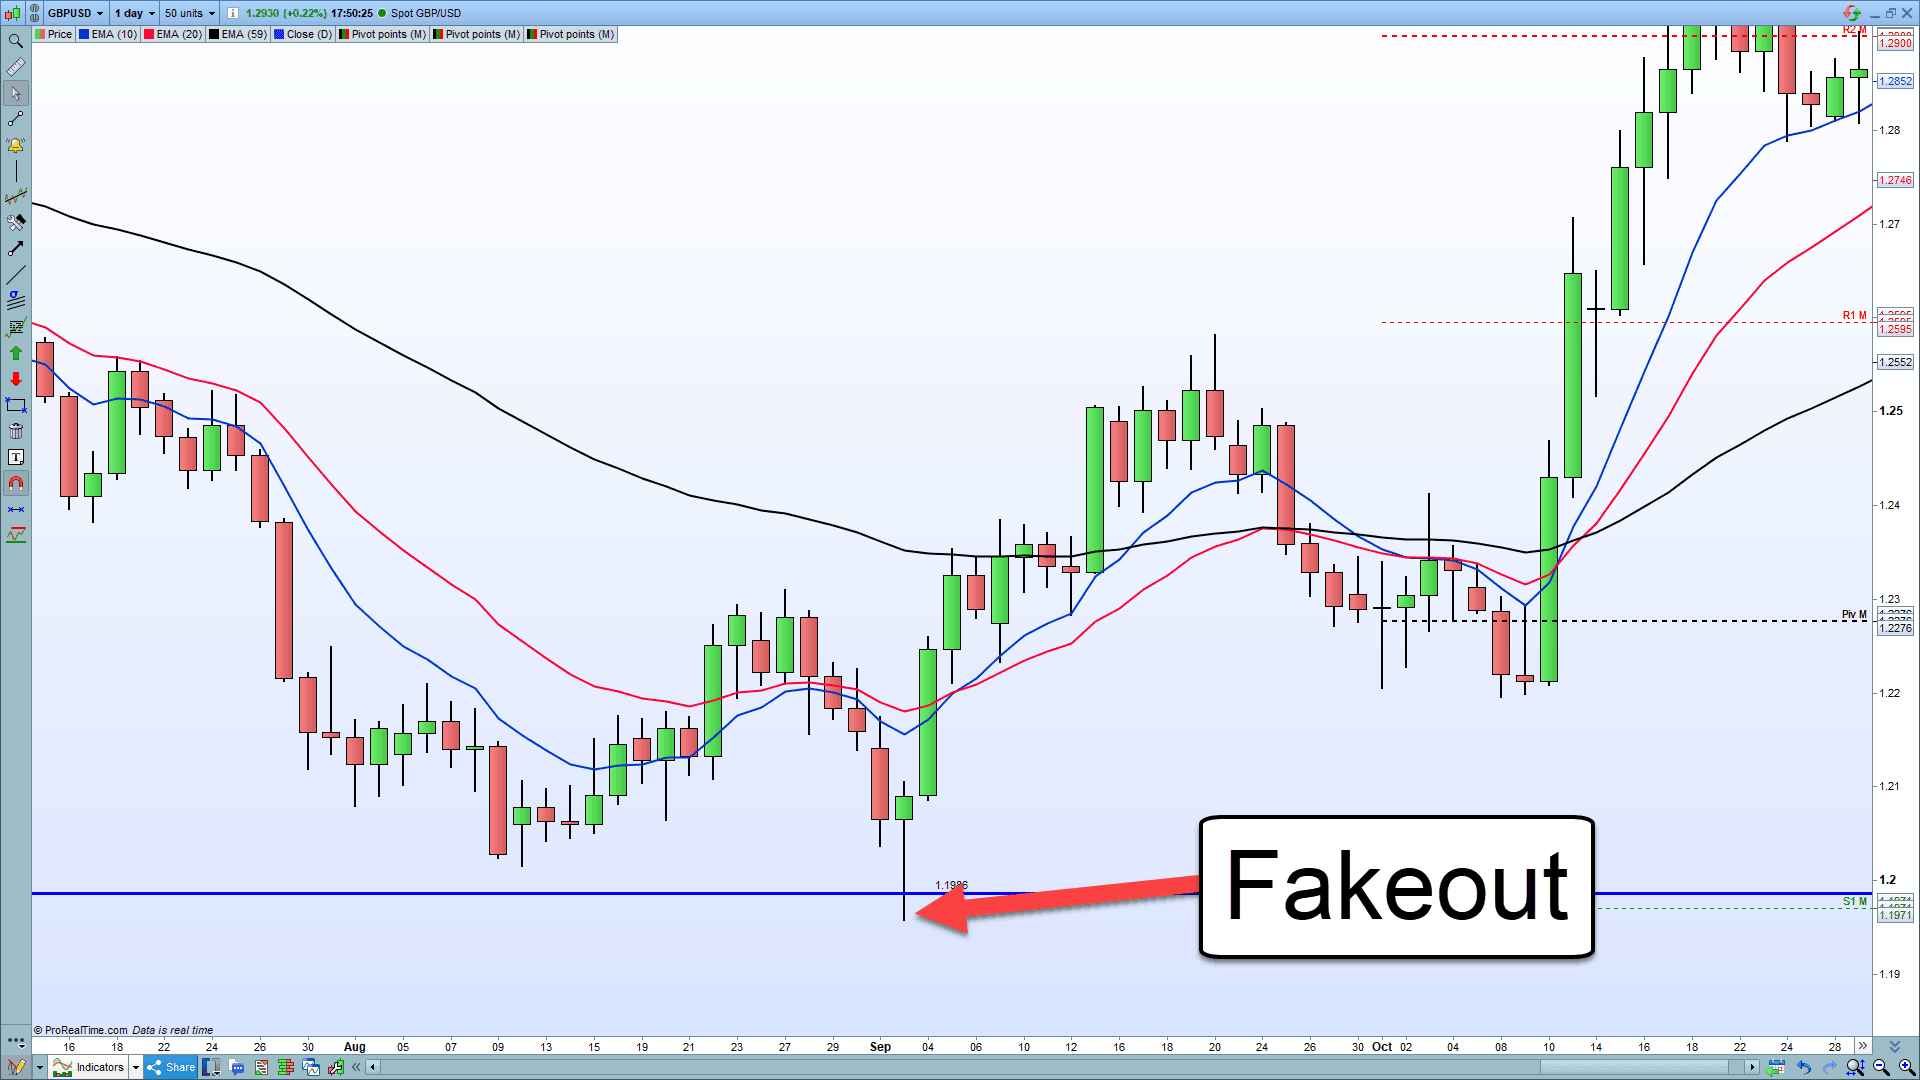 A chart showing daily support on the GBPUSD currency pair and a fakeout.